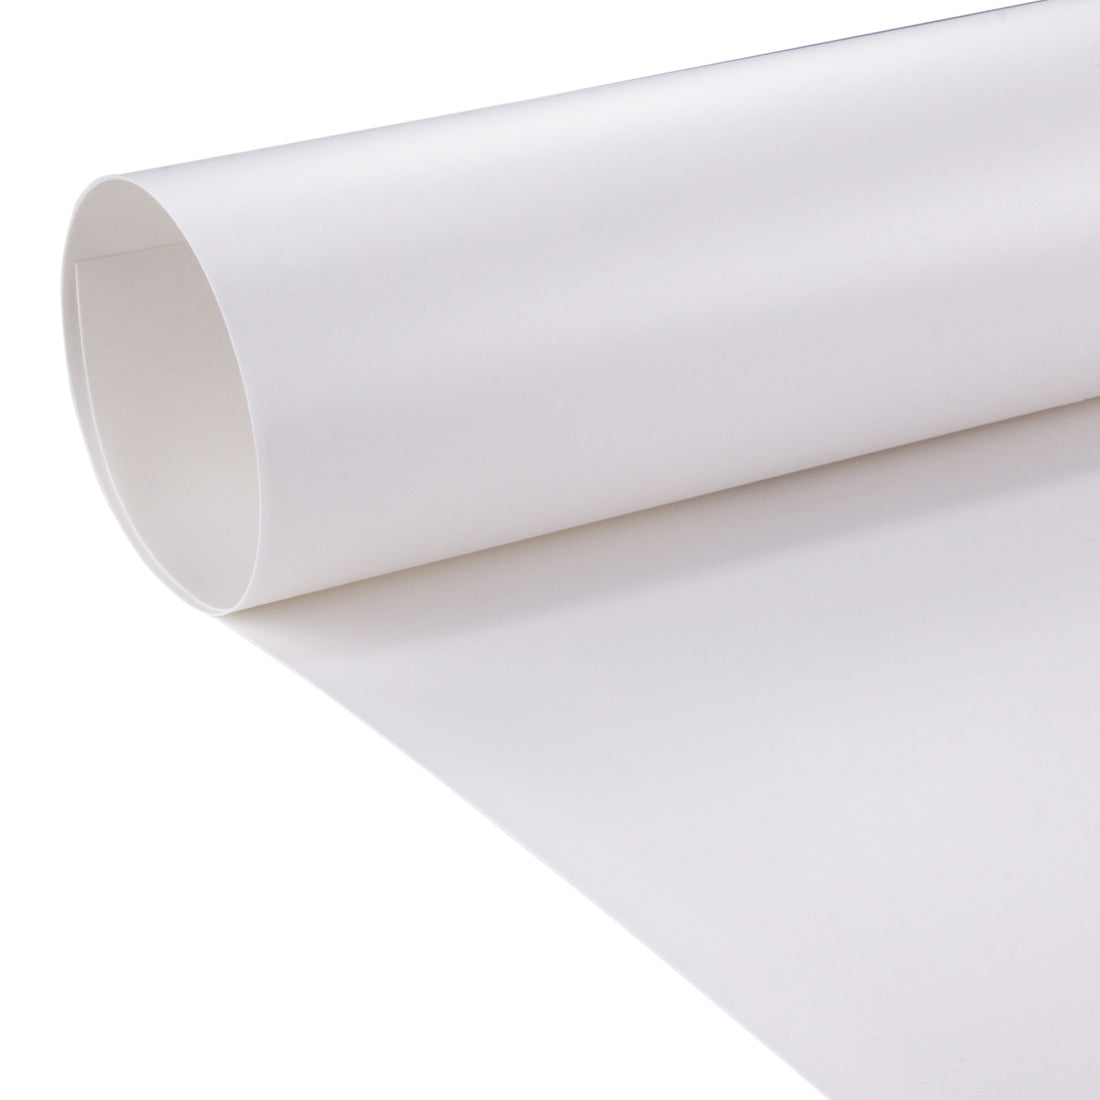 Photography Background PVC Paper for Studio Tent Box, Size: 73.5cm x 37.5cm(White)